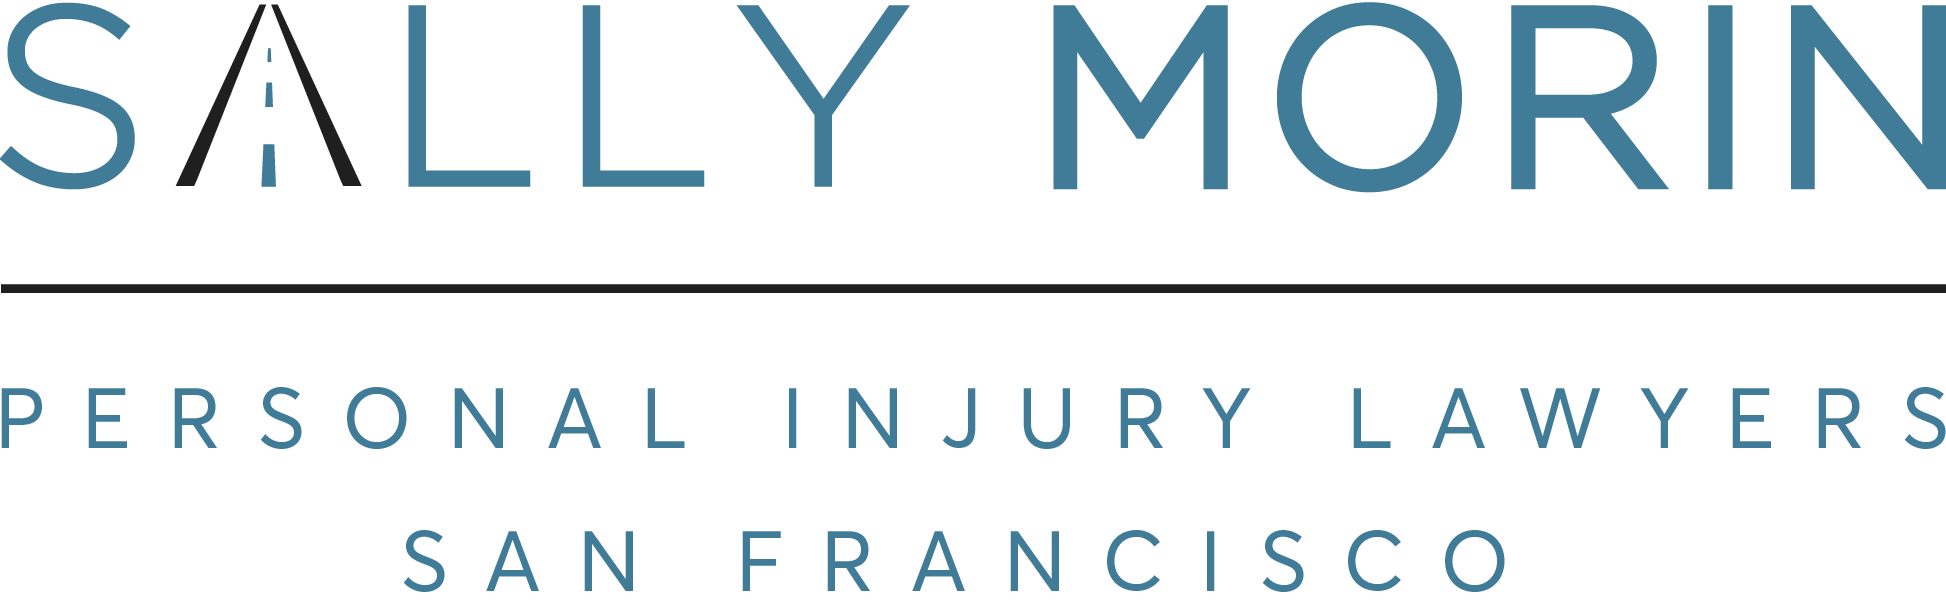 Sally Morin Personal Injury Lawyers San Francisco